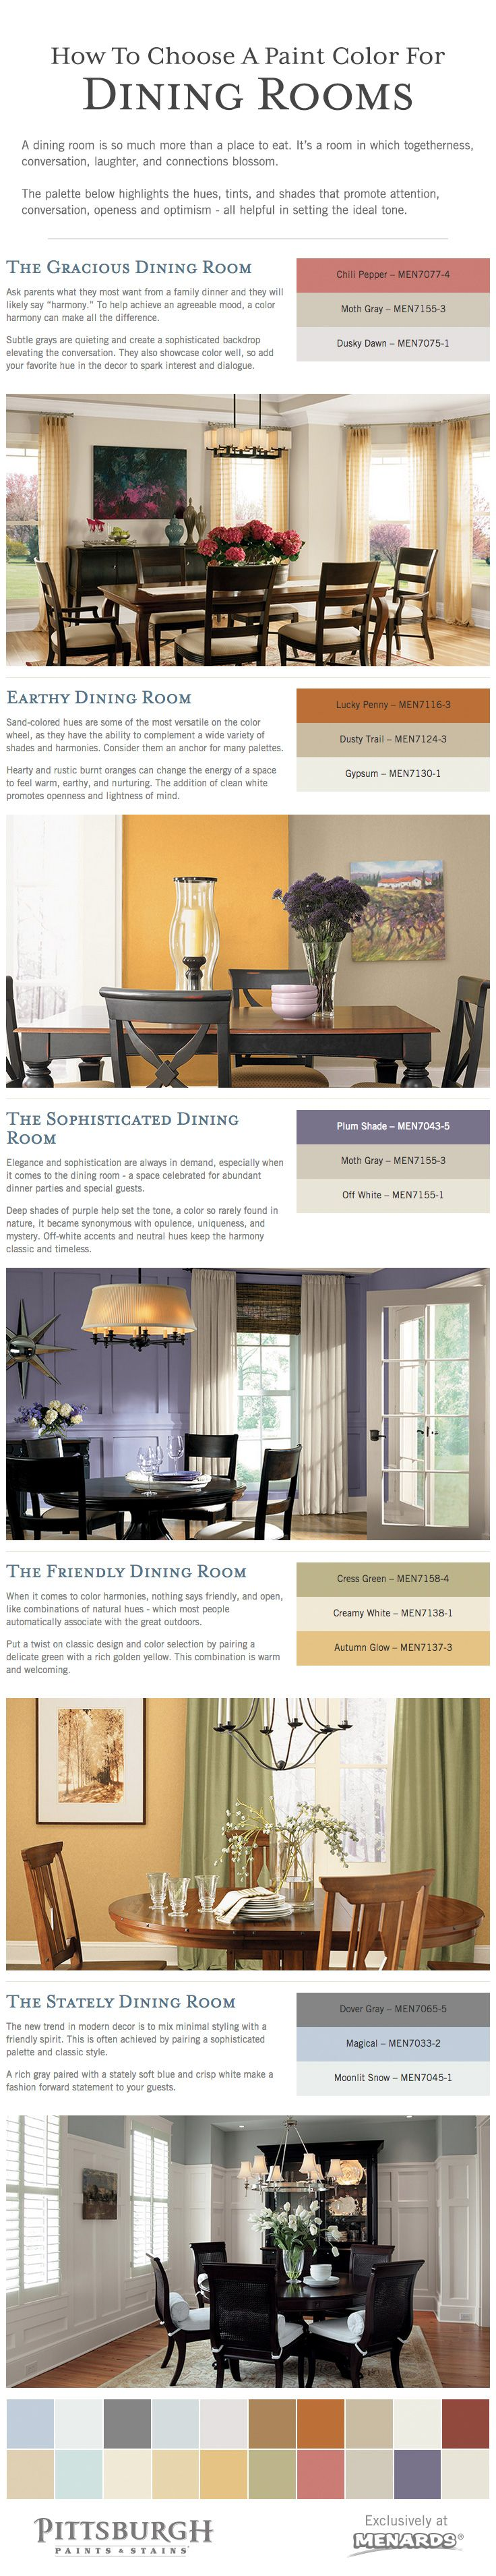 How To Choose A Paint Color For Dining Room Tips Selecting